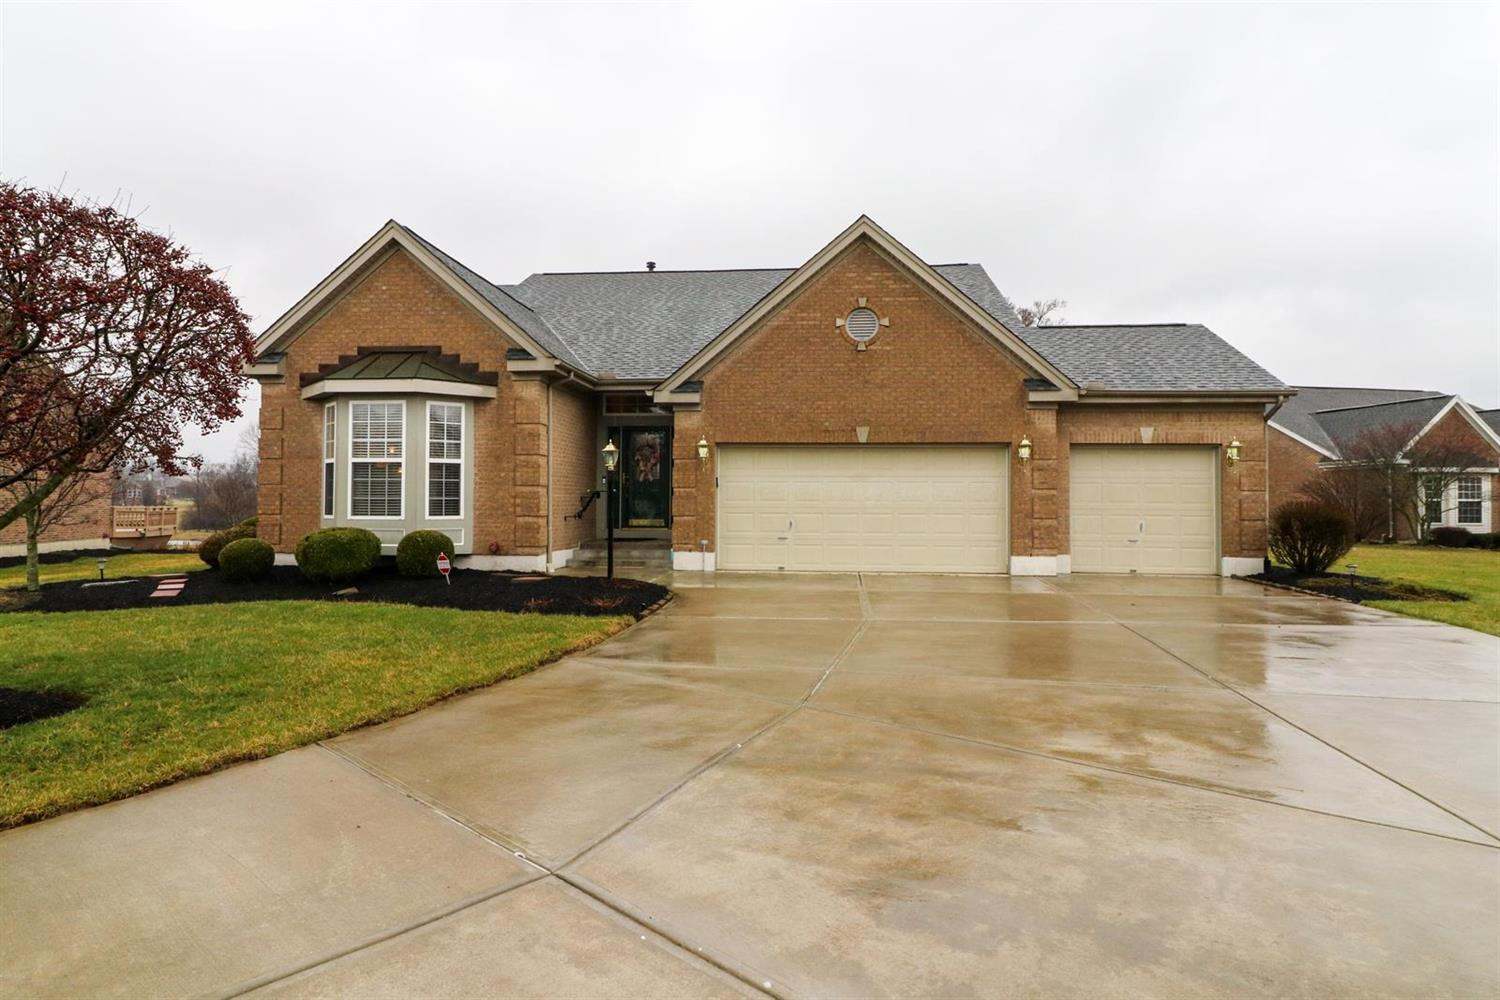 Property for sale at 2805 Fairways Drive, Fairfield Twp,  Ohio 45011